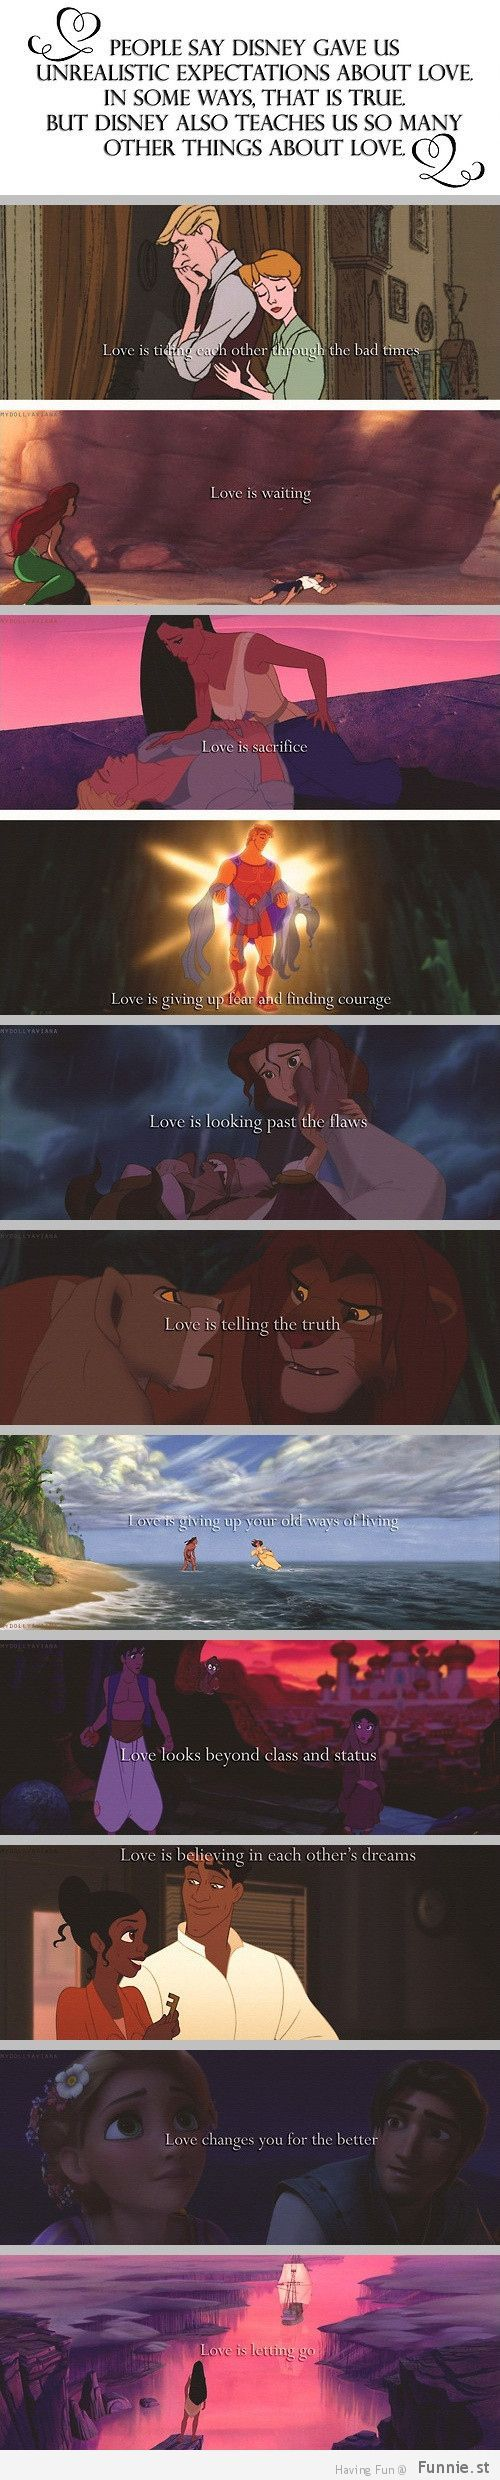 25 signs you grew up with Disney. This is the 25th, showing that it did teach you some realistic things about love <3